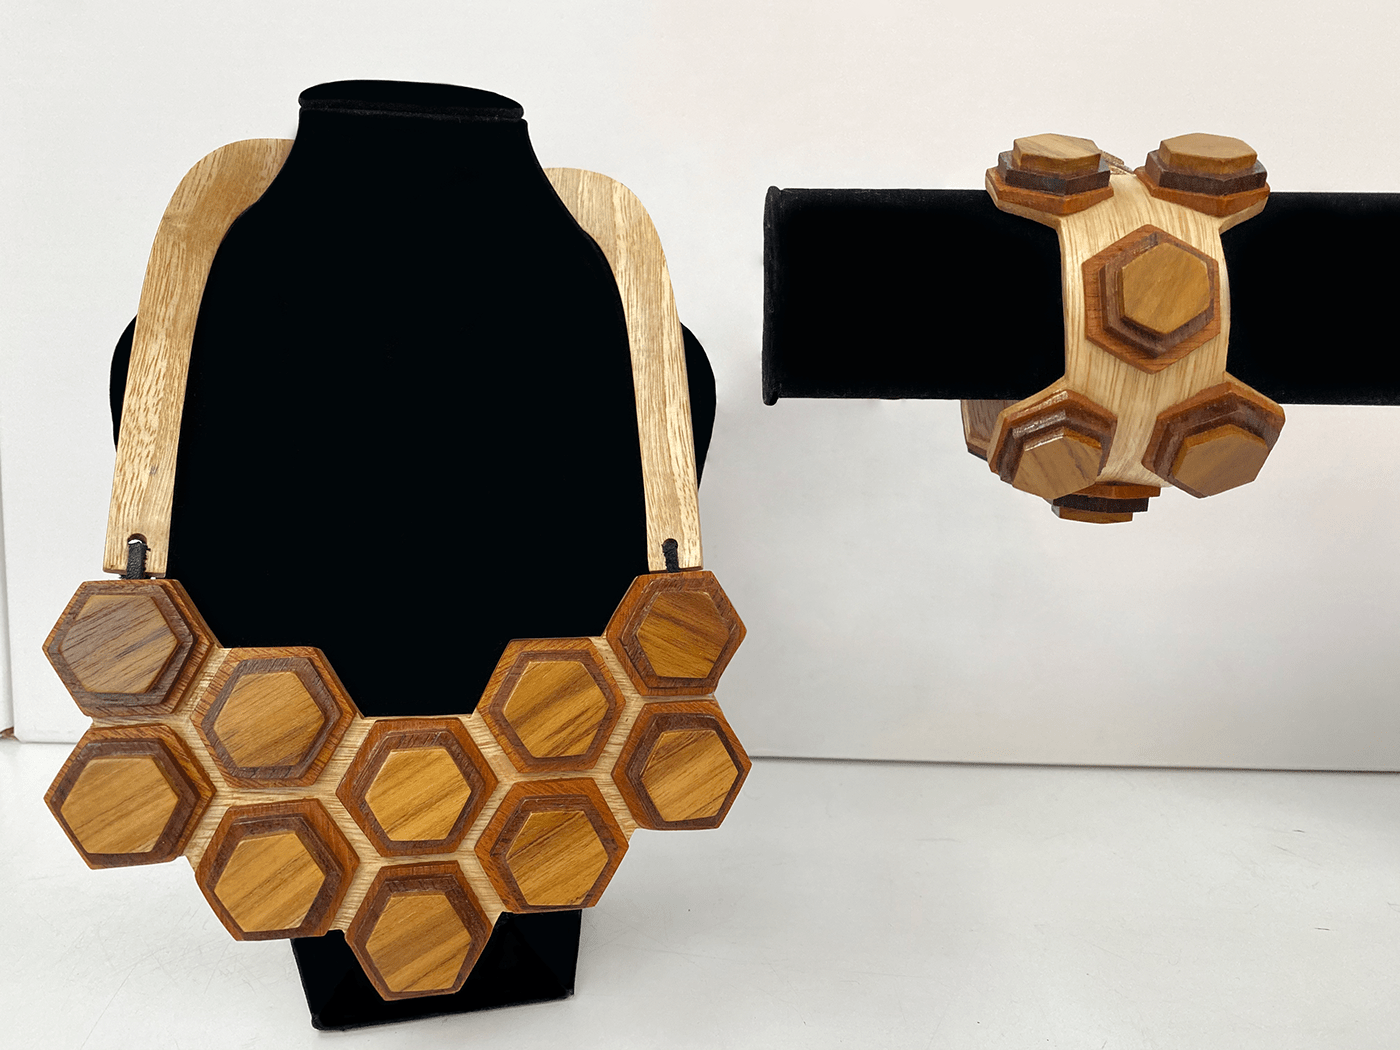 Image may contain: outdoor object, honeycomb and art